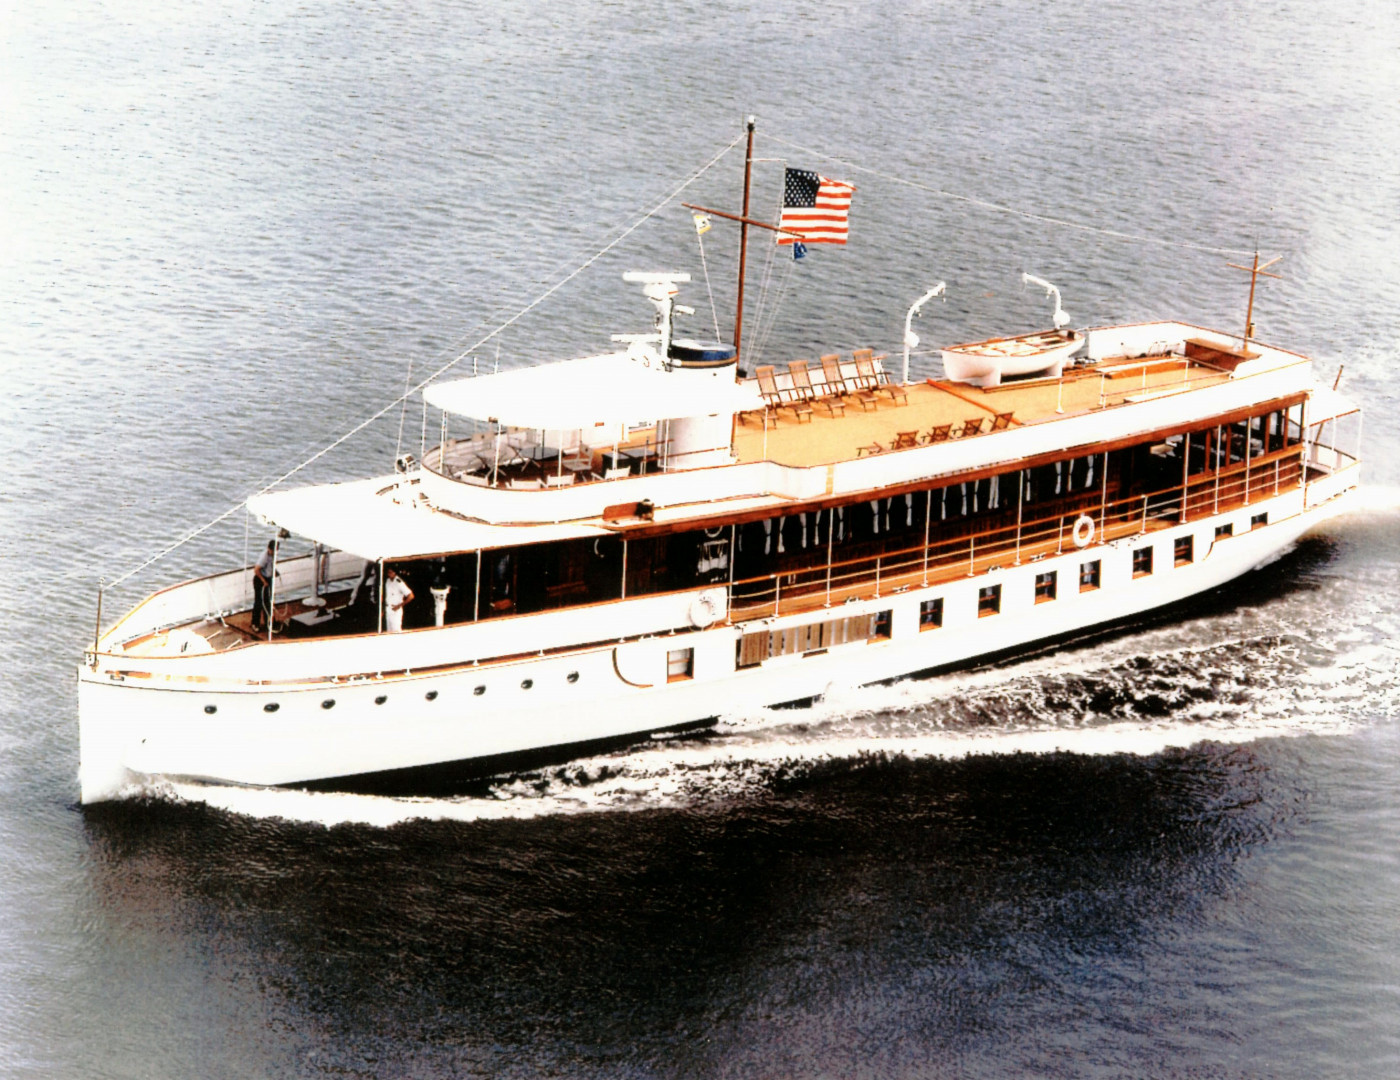 US_Navy_030423-N-0000X-001_The_former_Presidential_Yacht_USS_Sequoia_(AG_23)_travels_down_the_Potoma